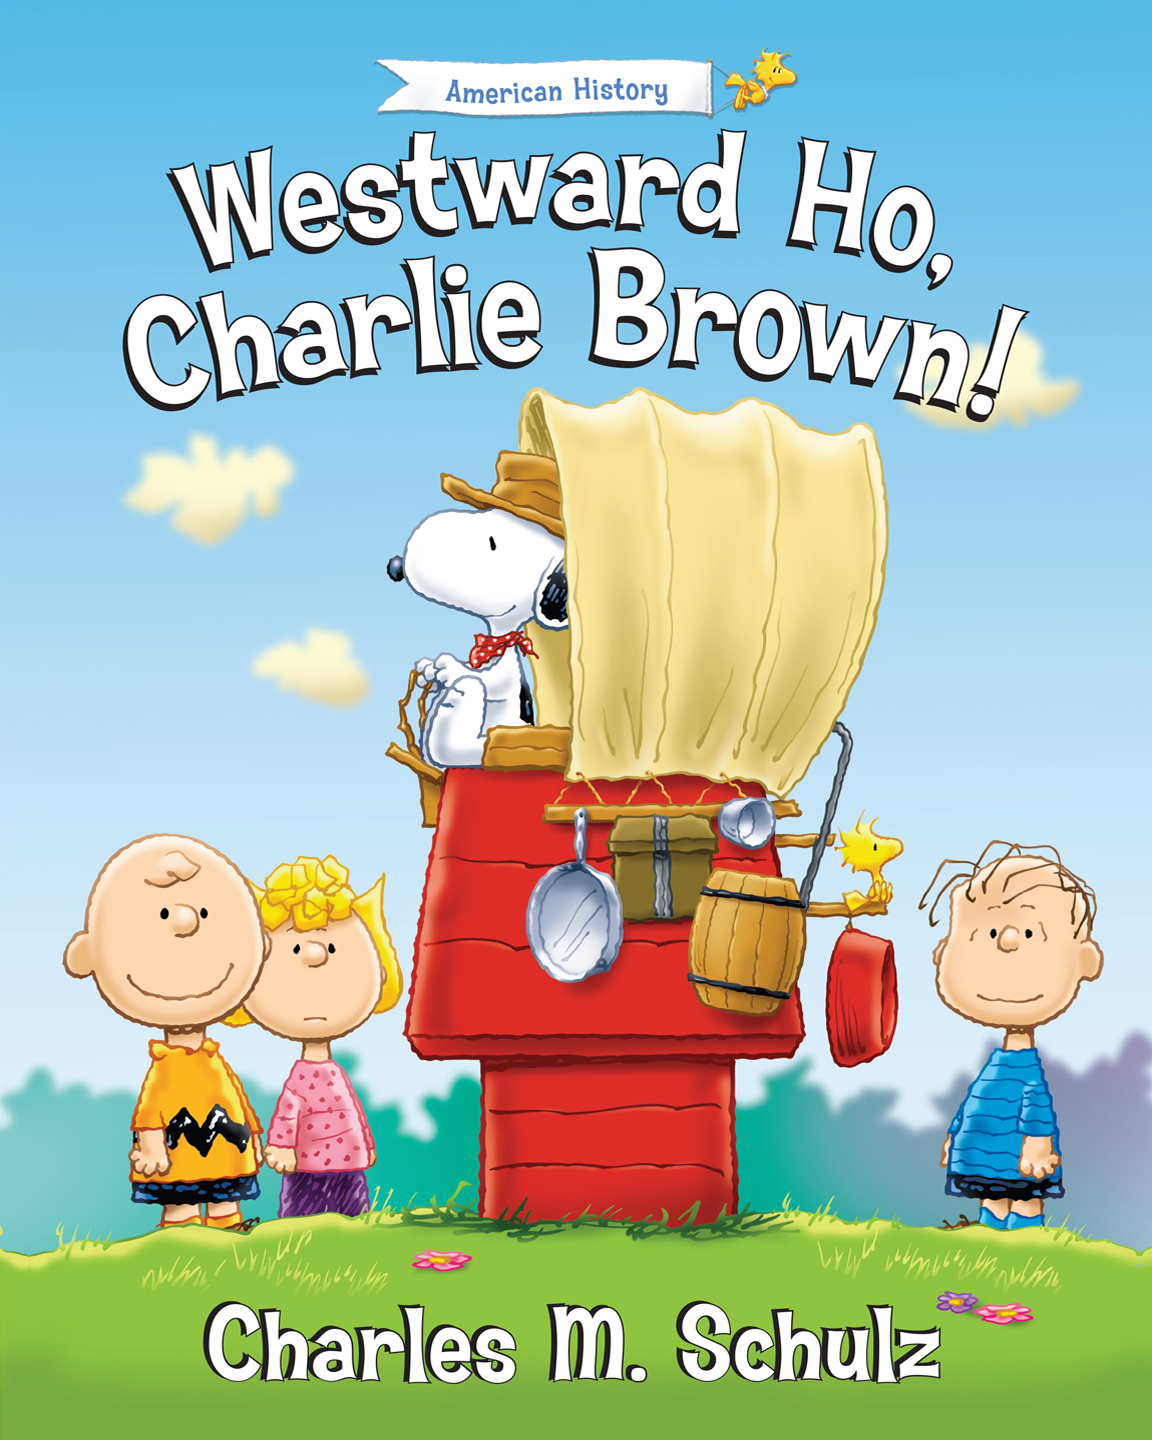 Westward Ho, Charlie Brown!